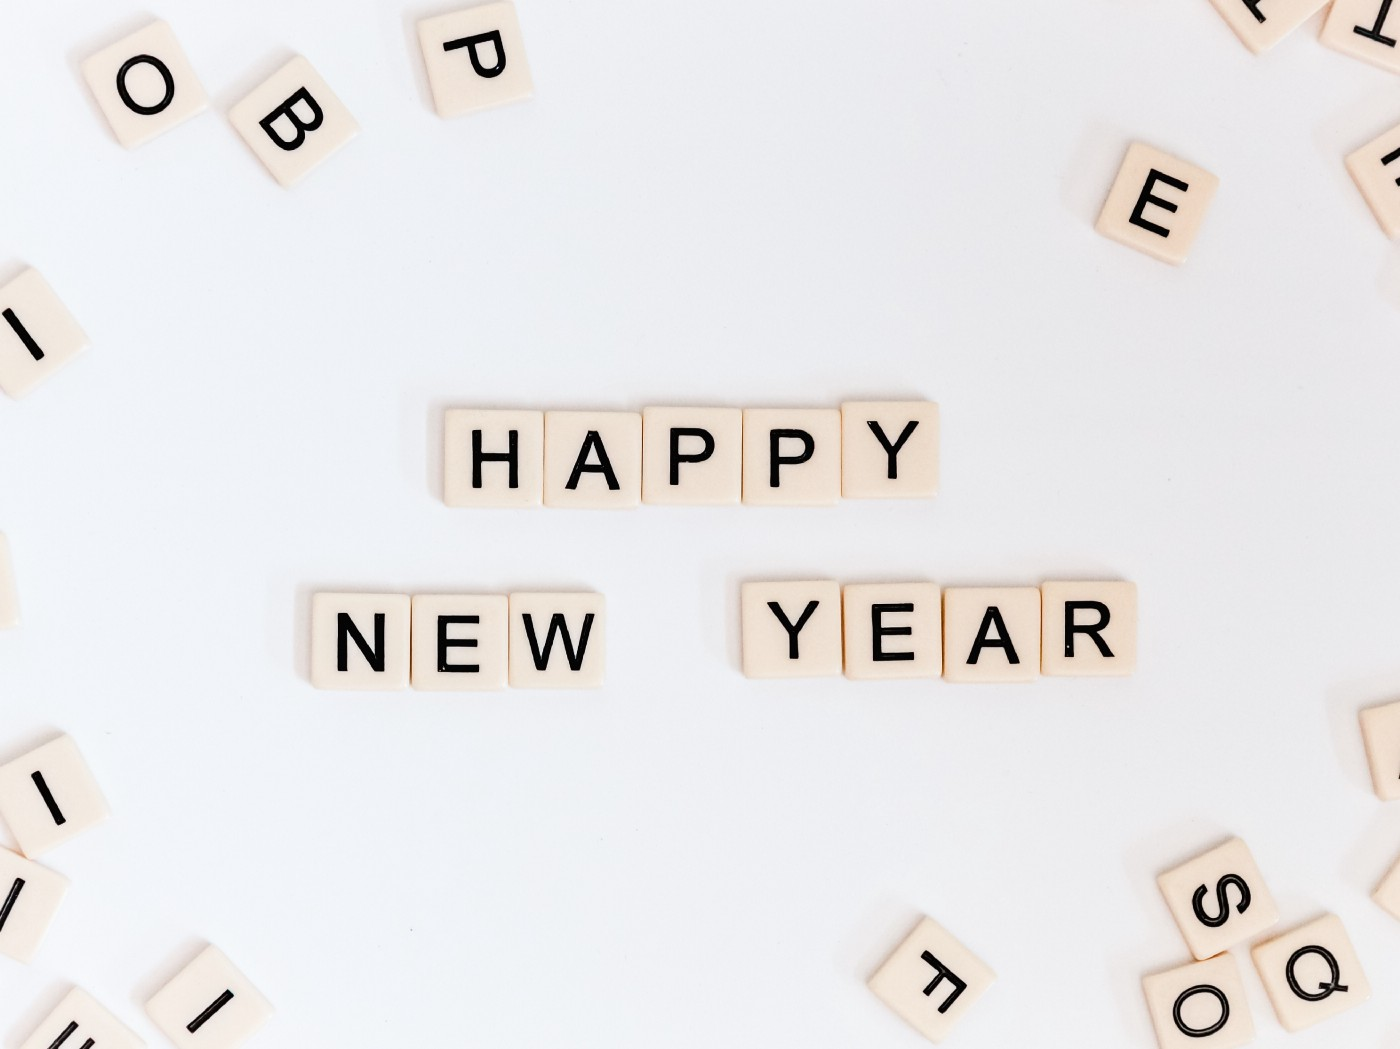 """Happy New Year"" spelled out with wooden squares with black letters on them"